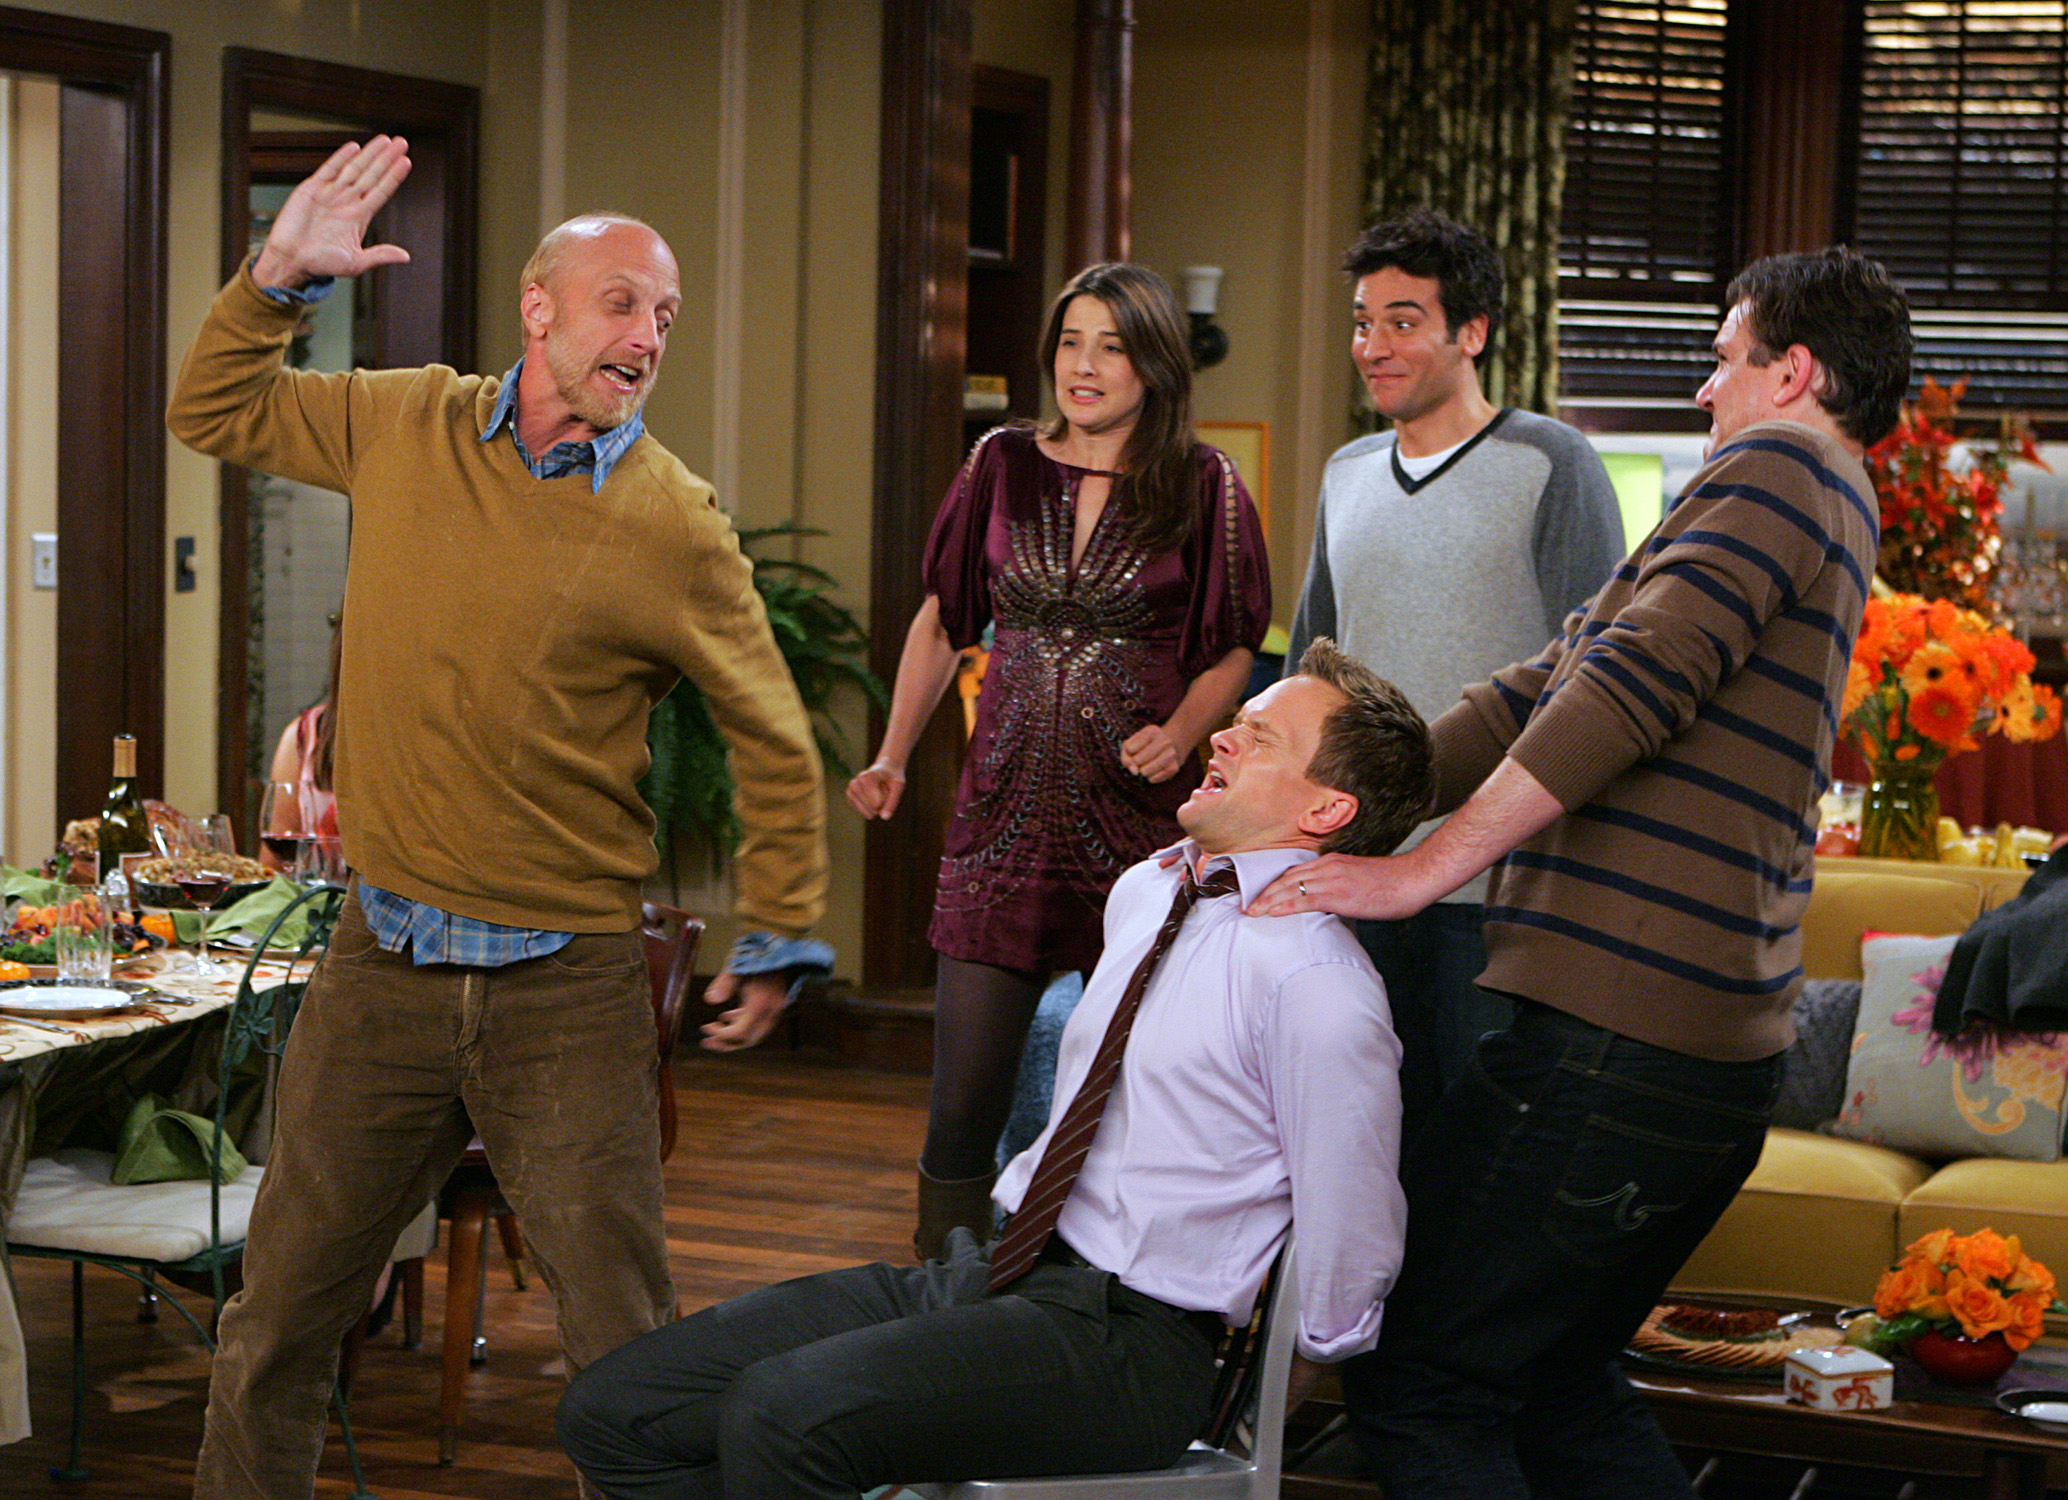 "Chris Elliott as Lily's father Mickey (left) with Cobie Smulders as Robin, Josh Radnor as Ted, Neil Patrick Harris as Barney, and Jason Segel as Marshall. ""Slapsgiving 2: Revenge of the Slap,"" Season 5, Episode 9 of How I Met Your Mother. Photo: Monty Brinton/CBS © 2009 CBS Broadcasting Inc. All Rights Reserved."